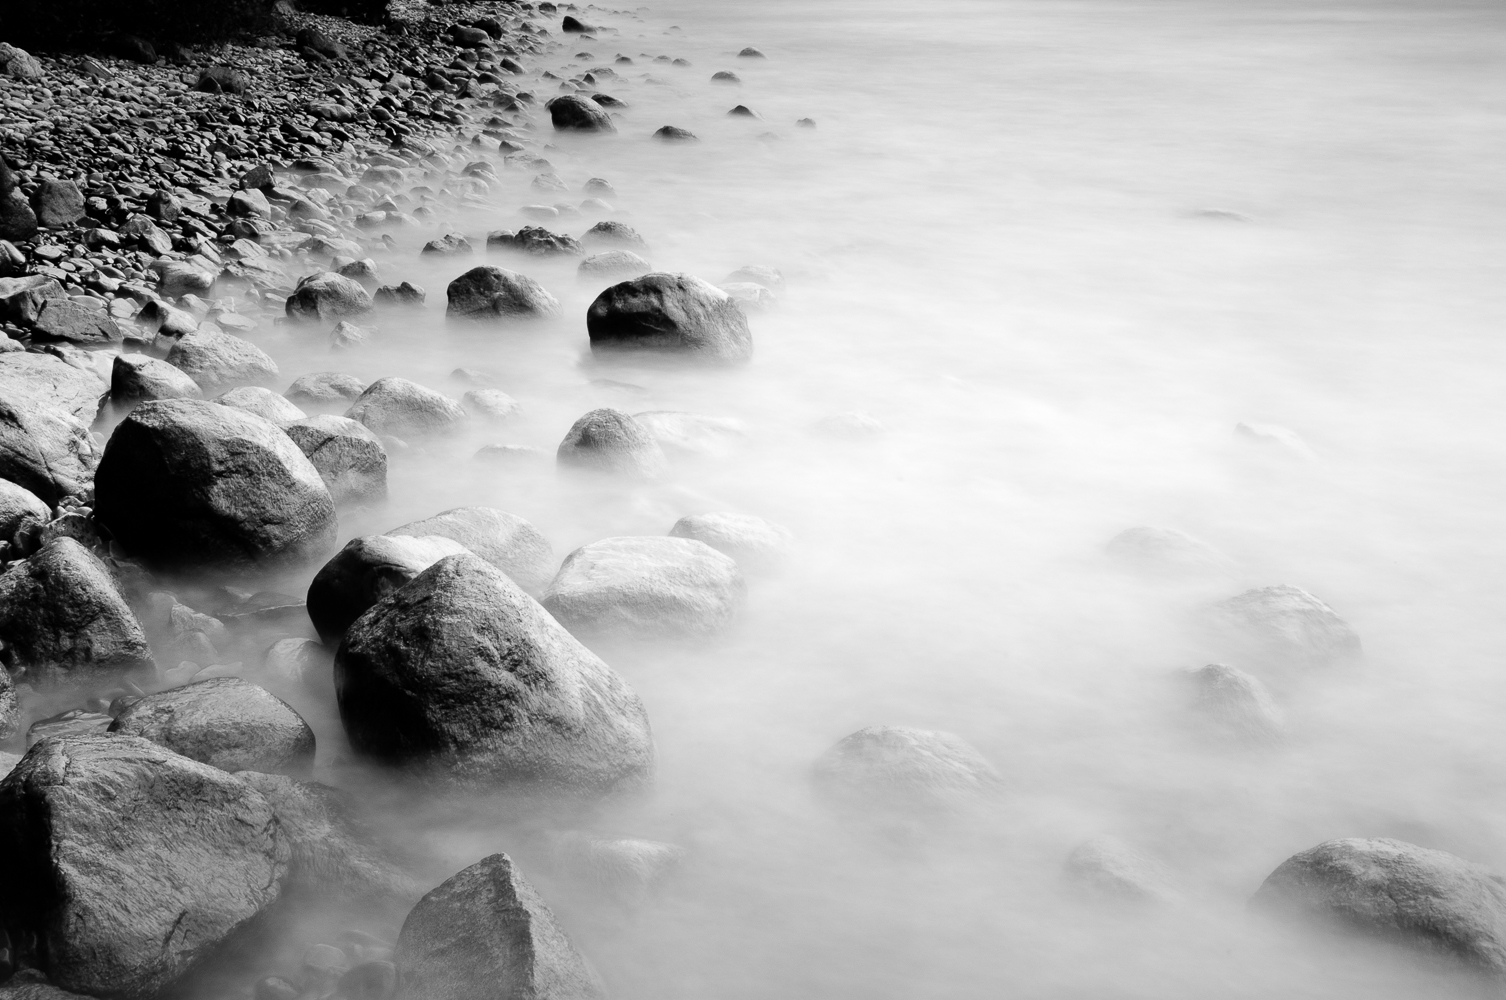 Stones in water by Mark Whitney